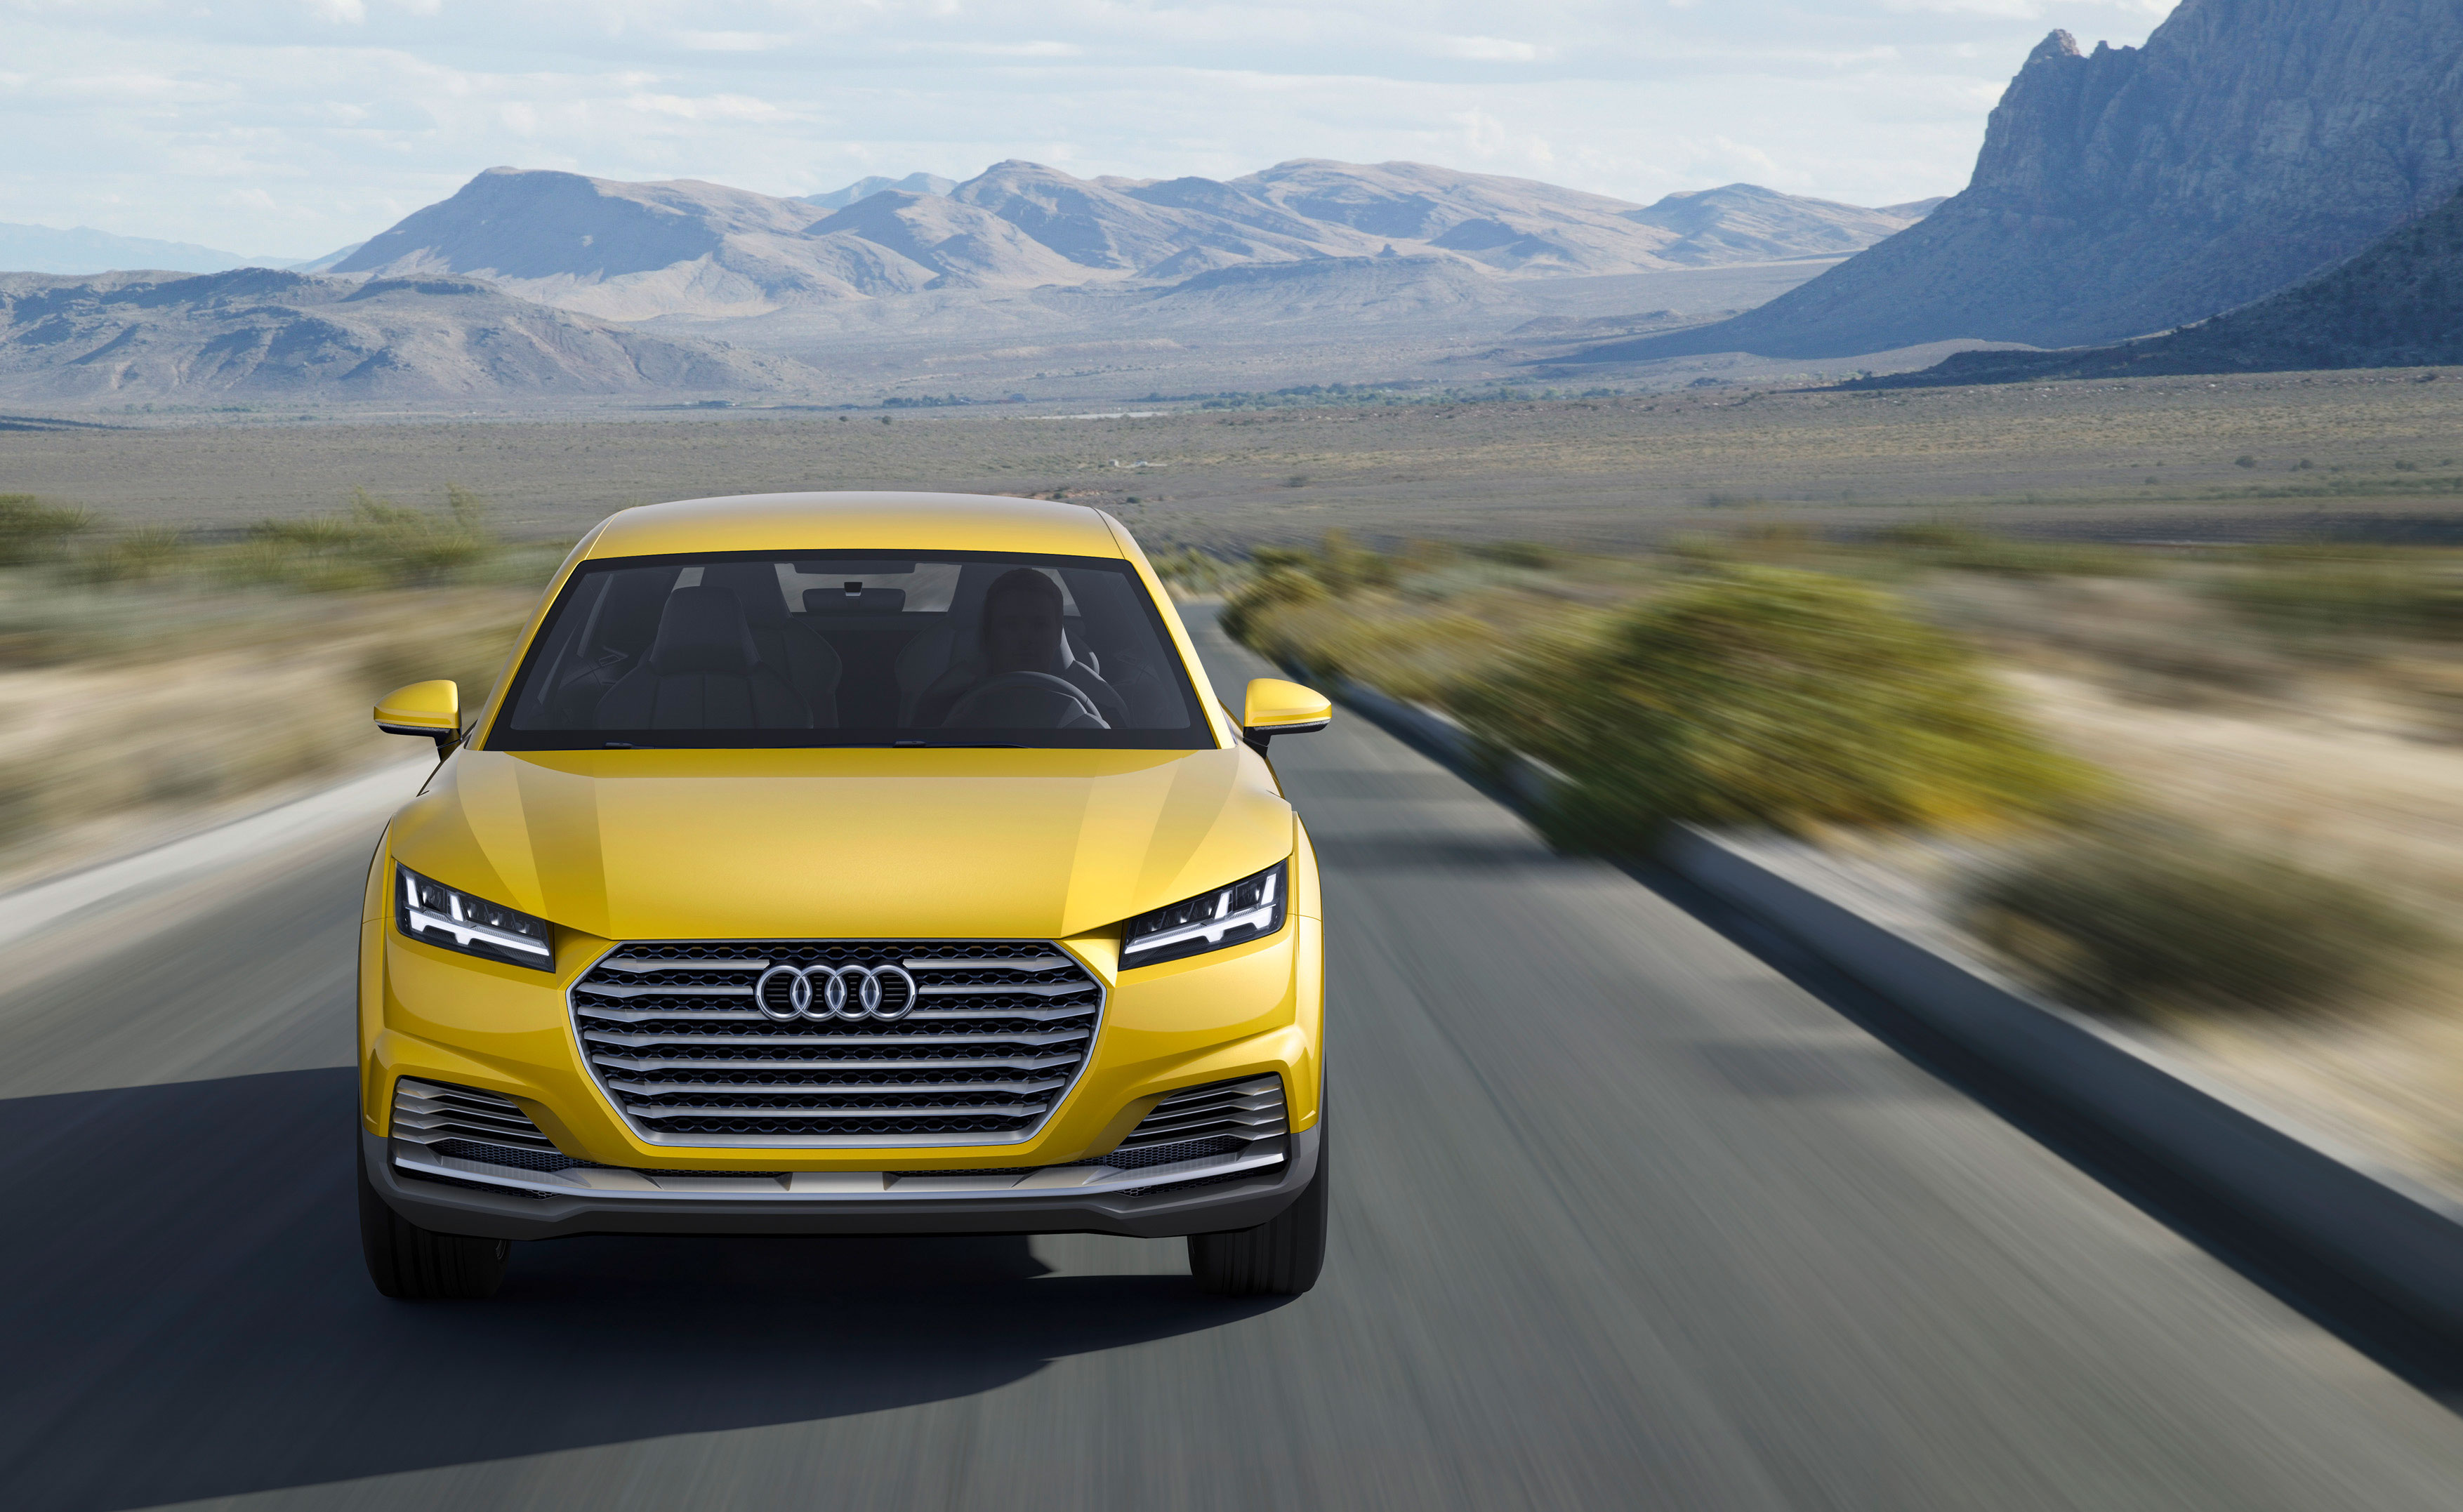 Audi TT Offroad Concept 2014 Front Gelb fahrend